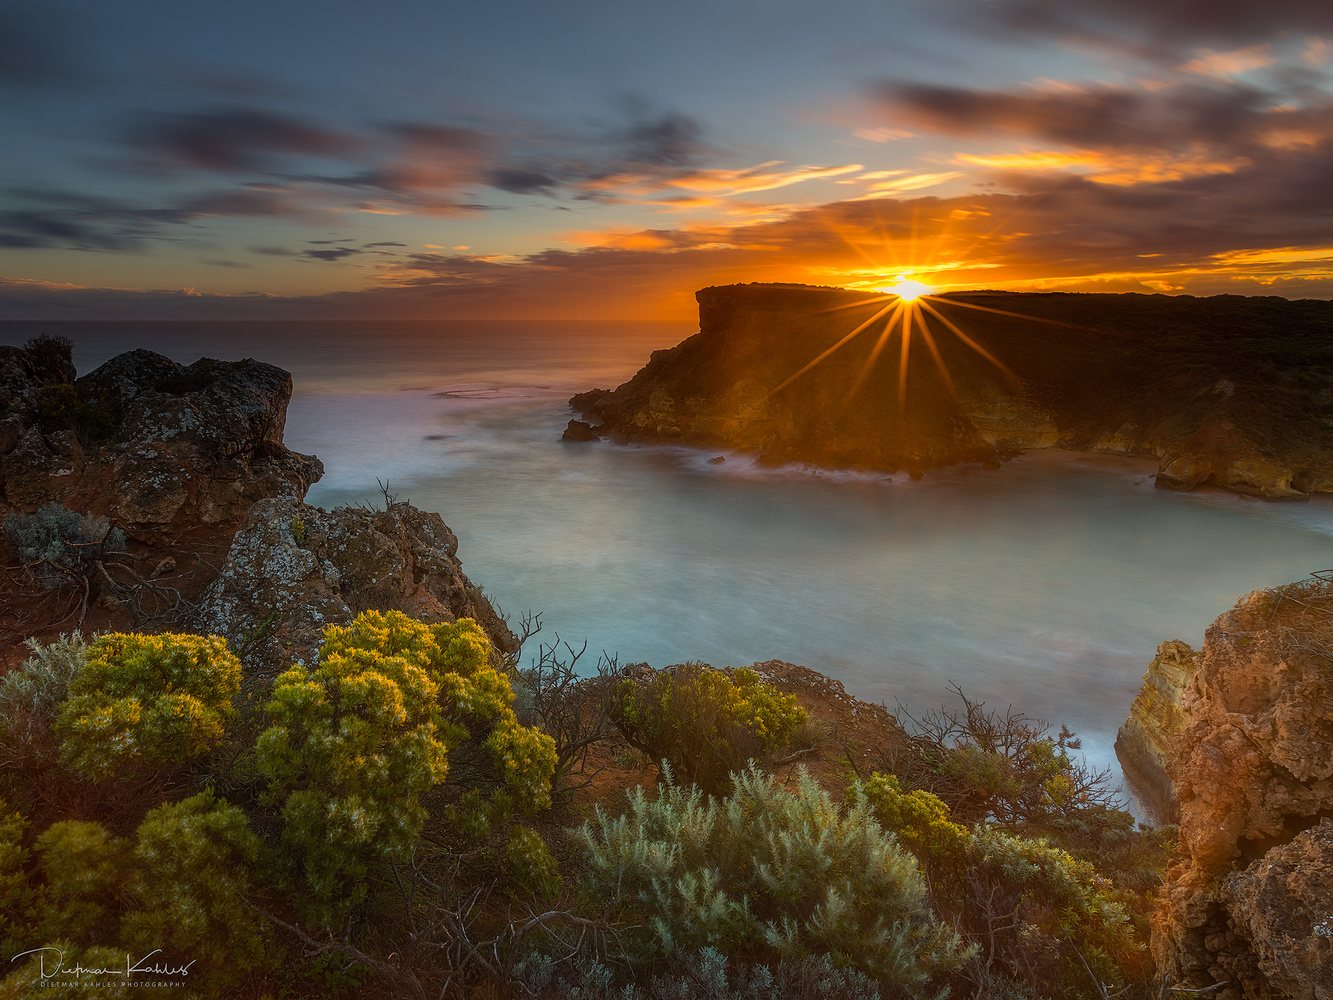 Sunset at Childers Cove, Victoria by Dietmar Kahles